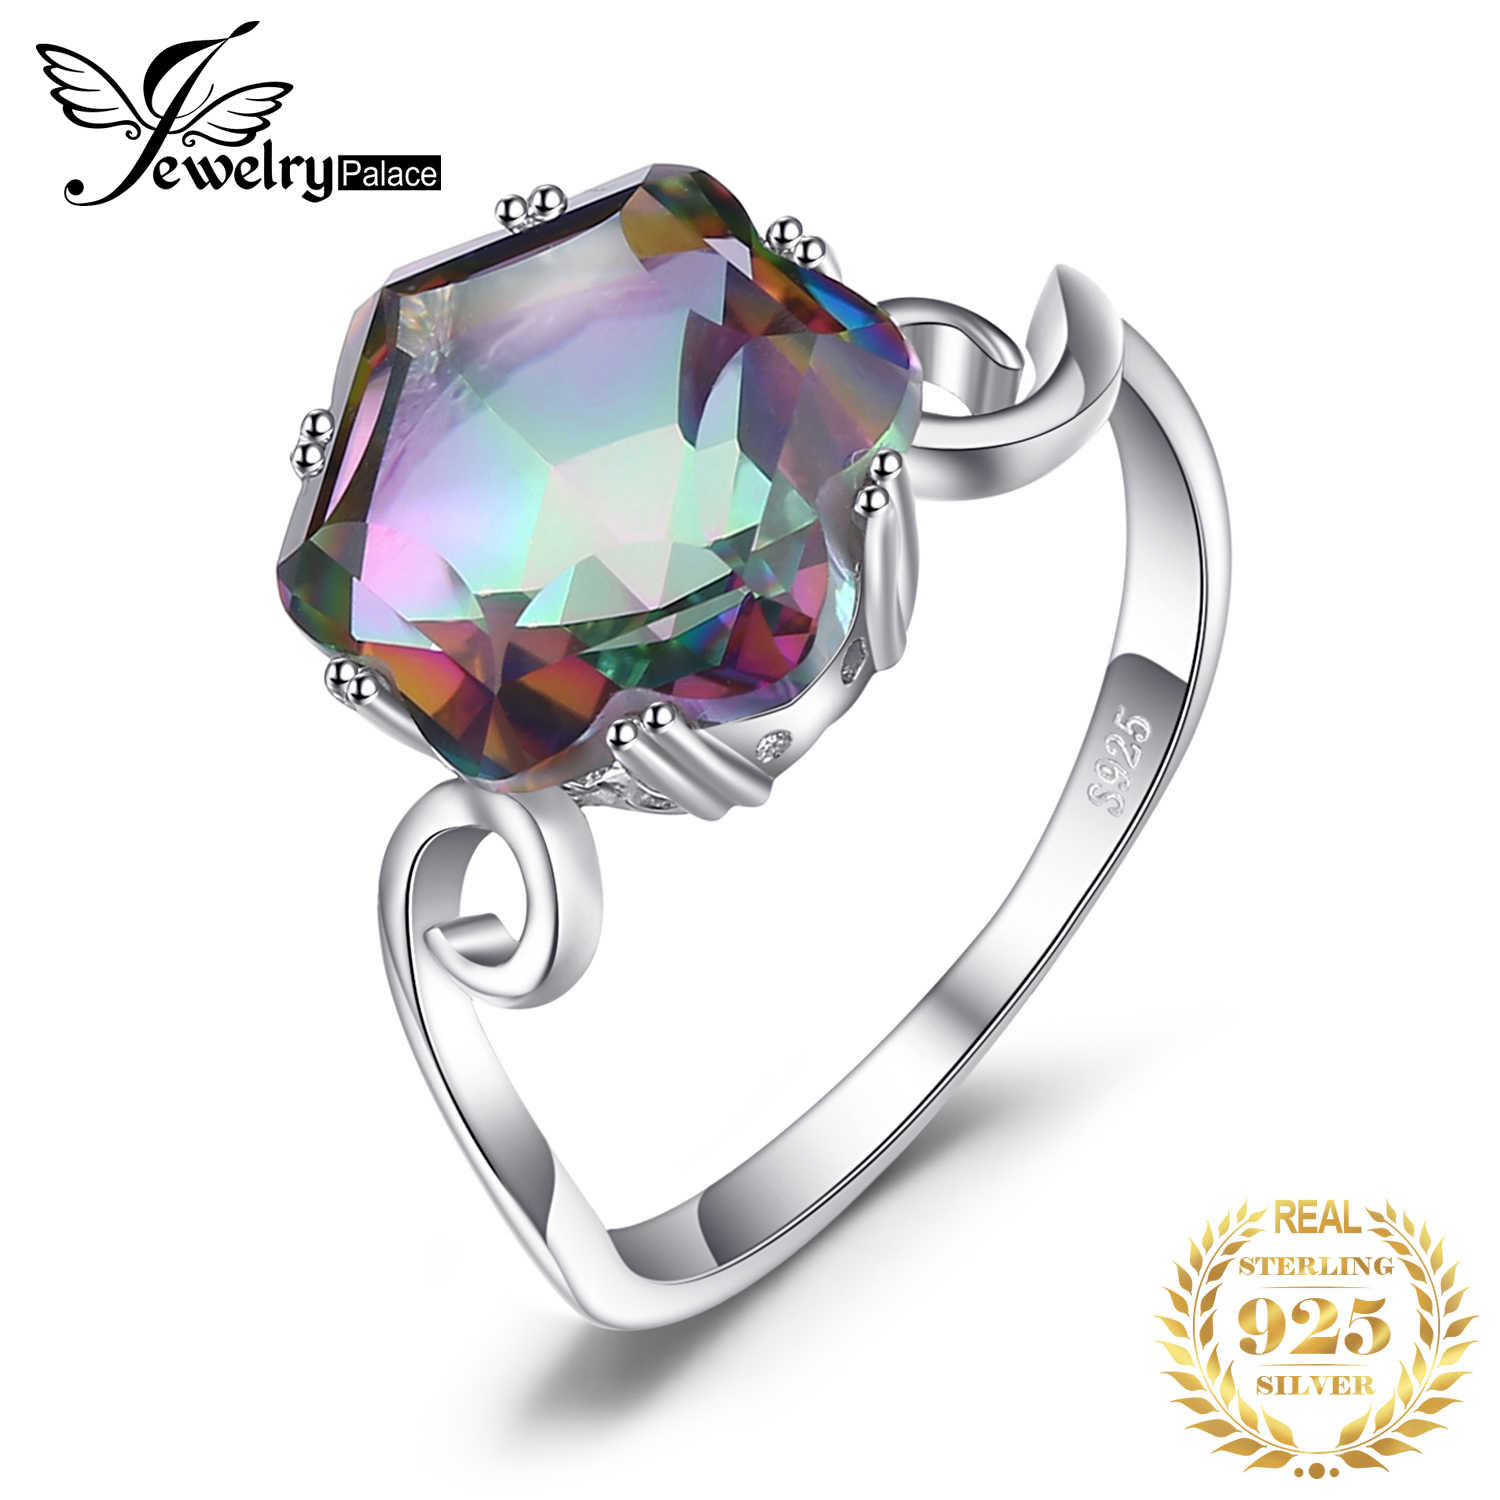 JewelryPalace Engagement Ring Women Jewelry 3.2ct Genuine Rainbow Fire Mystic Topaz Vintage 925 Sterling Silver Brand Fashion